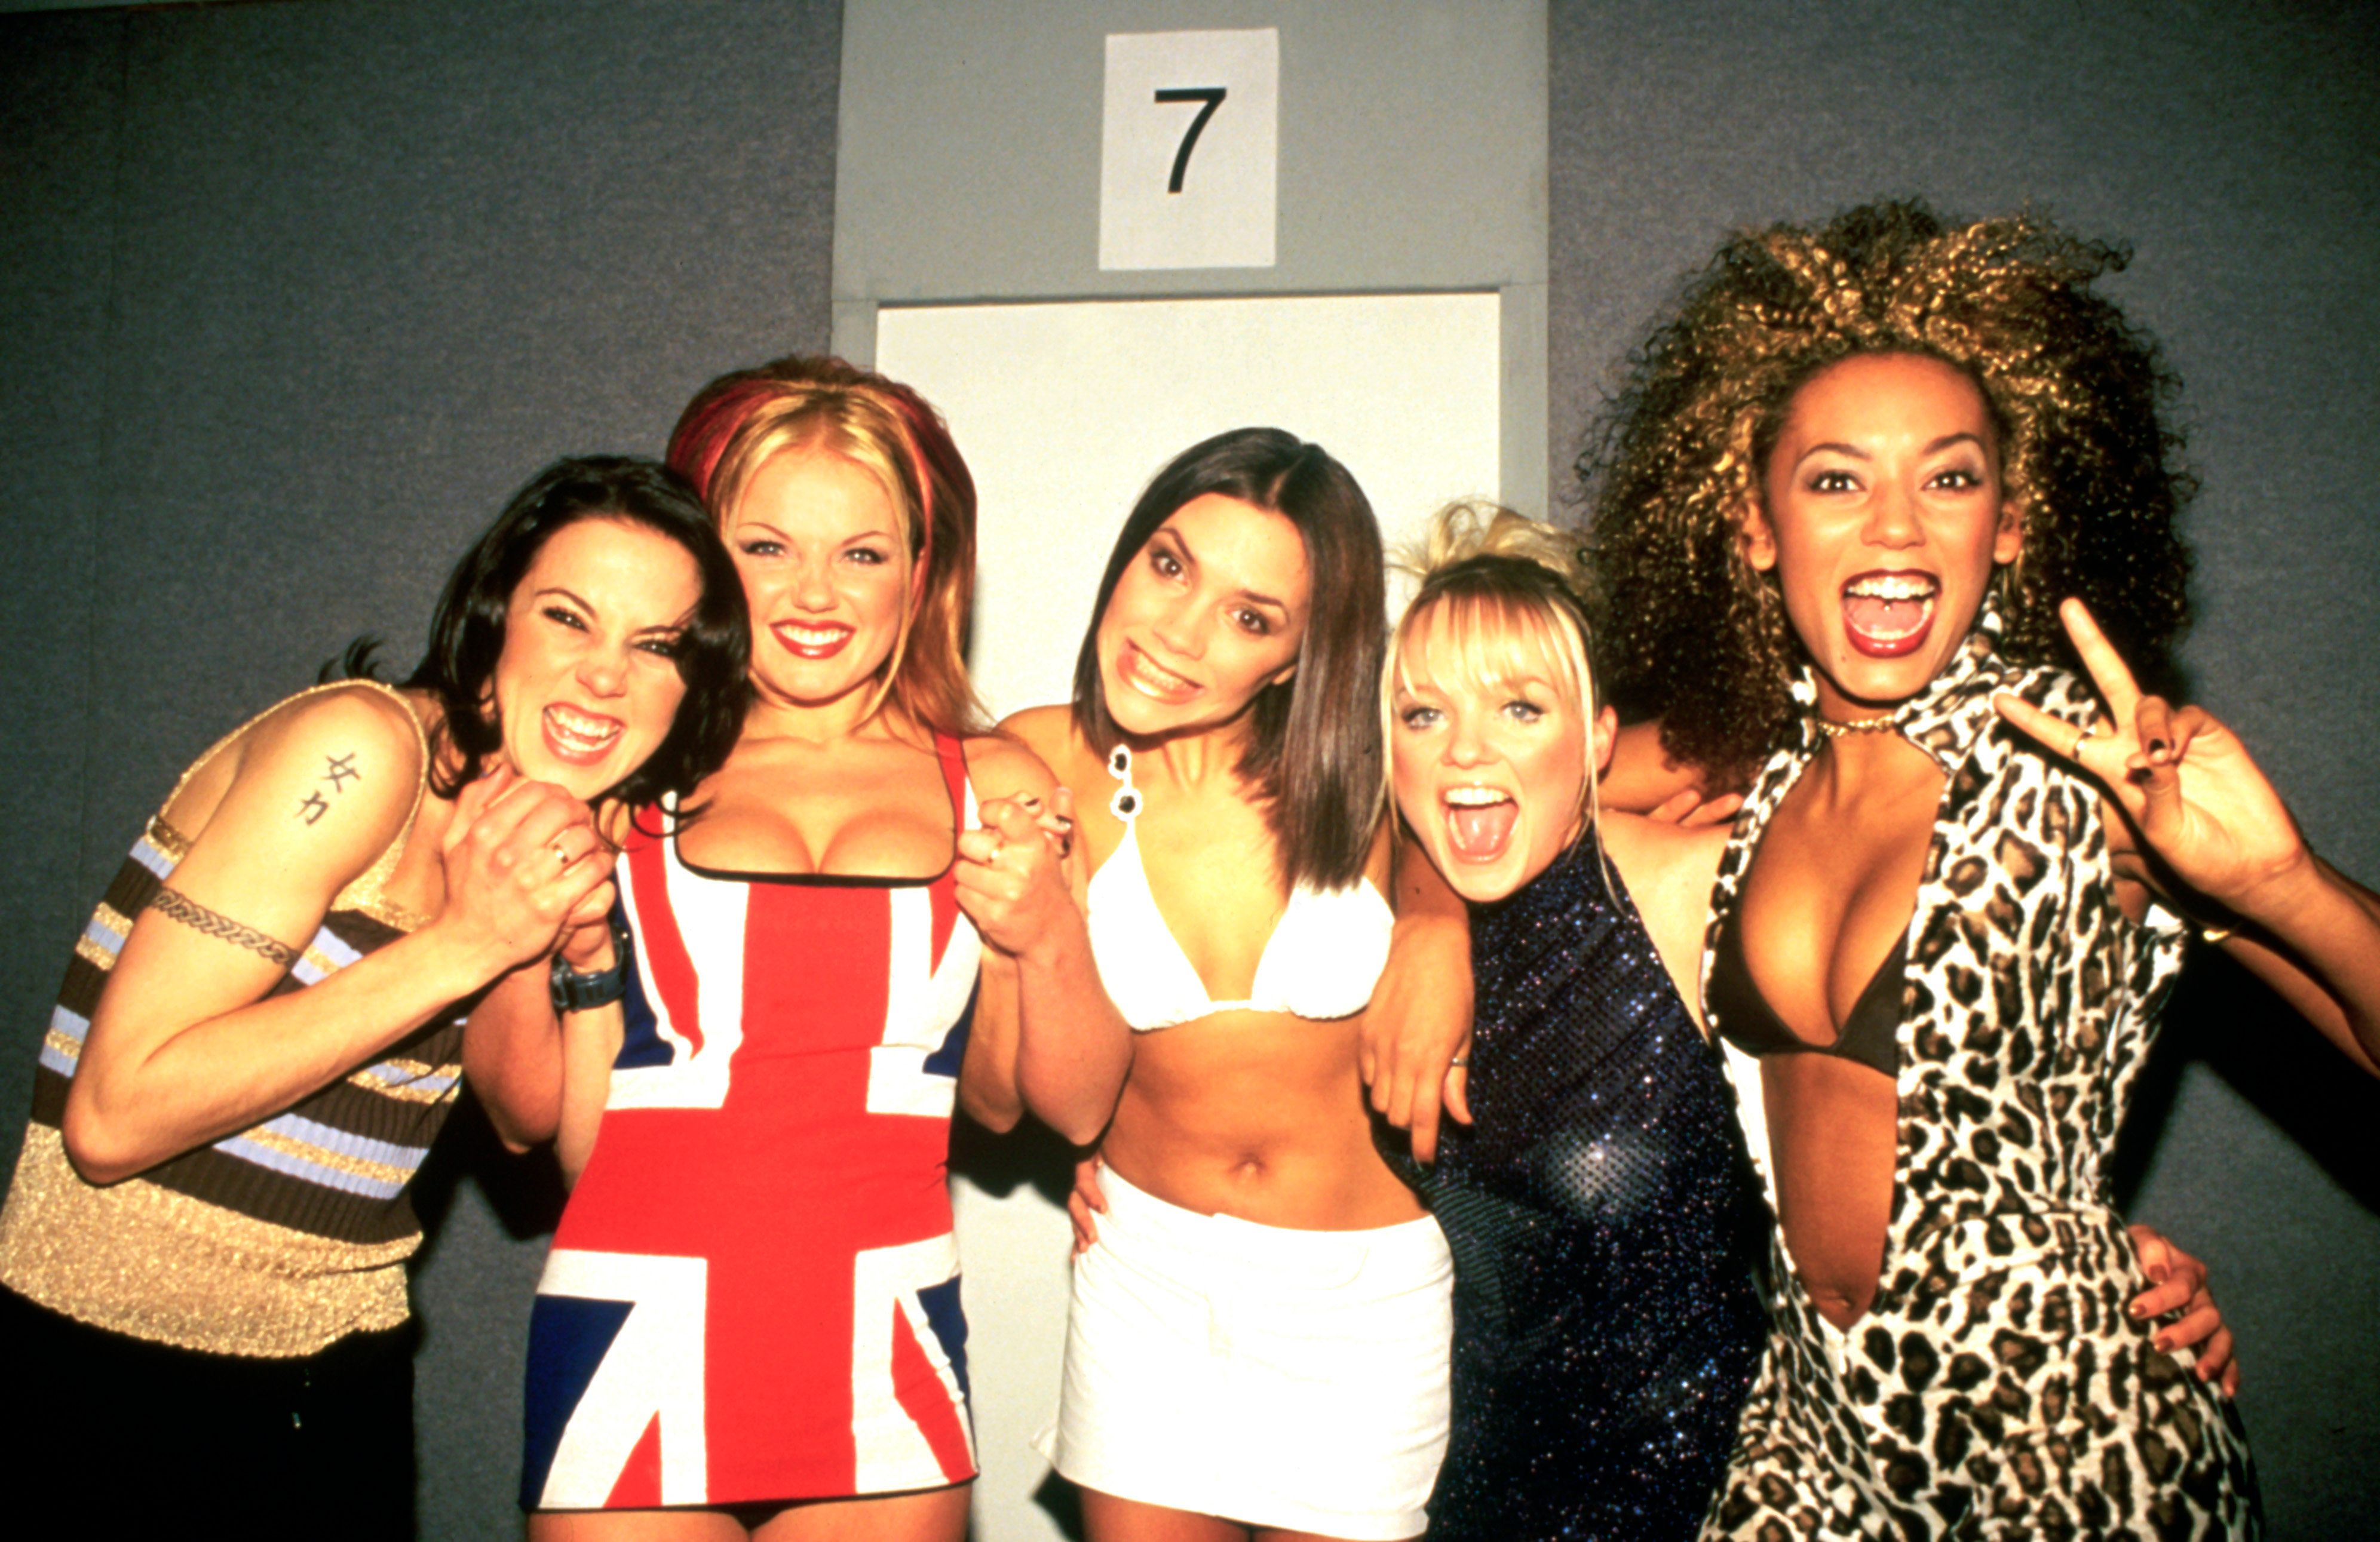 Spice Up Your Life With These 8 Girlband-Inspired